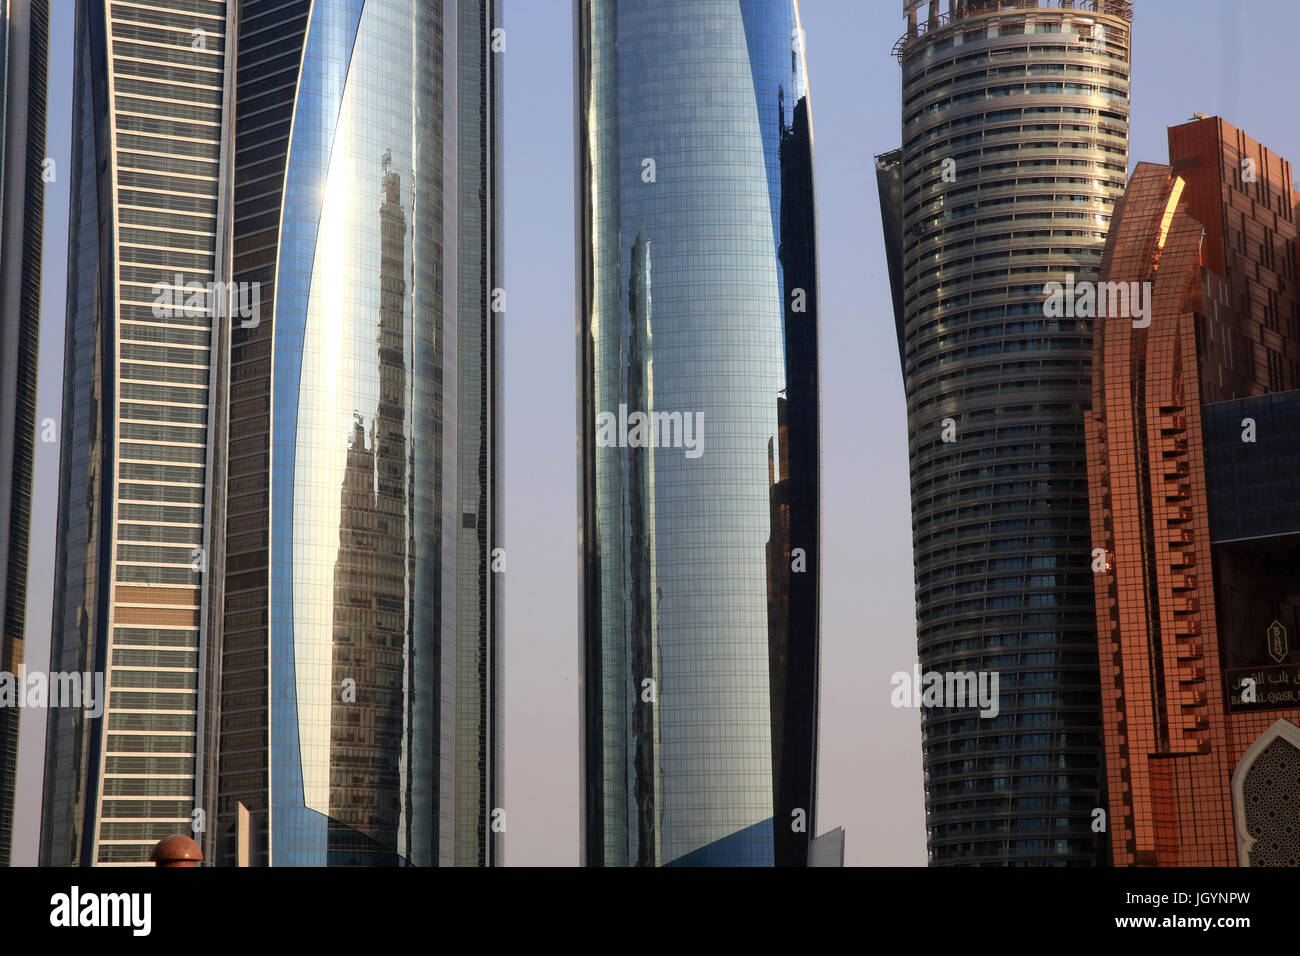 Etihad Towers building complex. Jumeirah. 2007-2011. Emirate of Abu Dhabi. Stock Photo